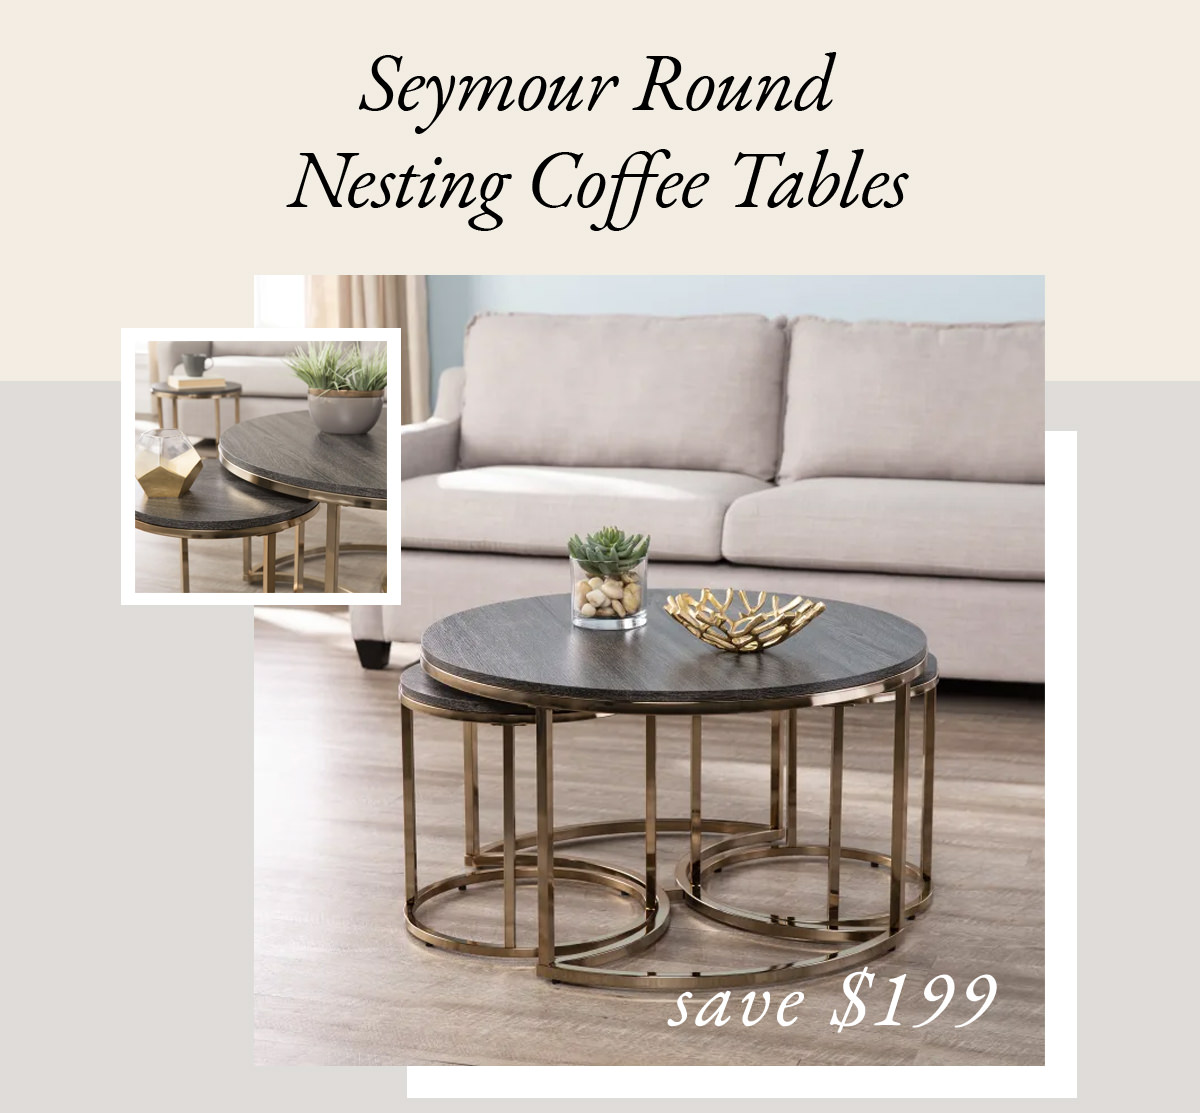 Seymour Round Nesting Set of 3 Coffee Tables | SHOP NOW